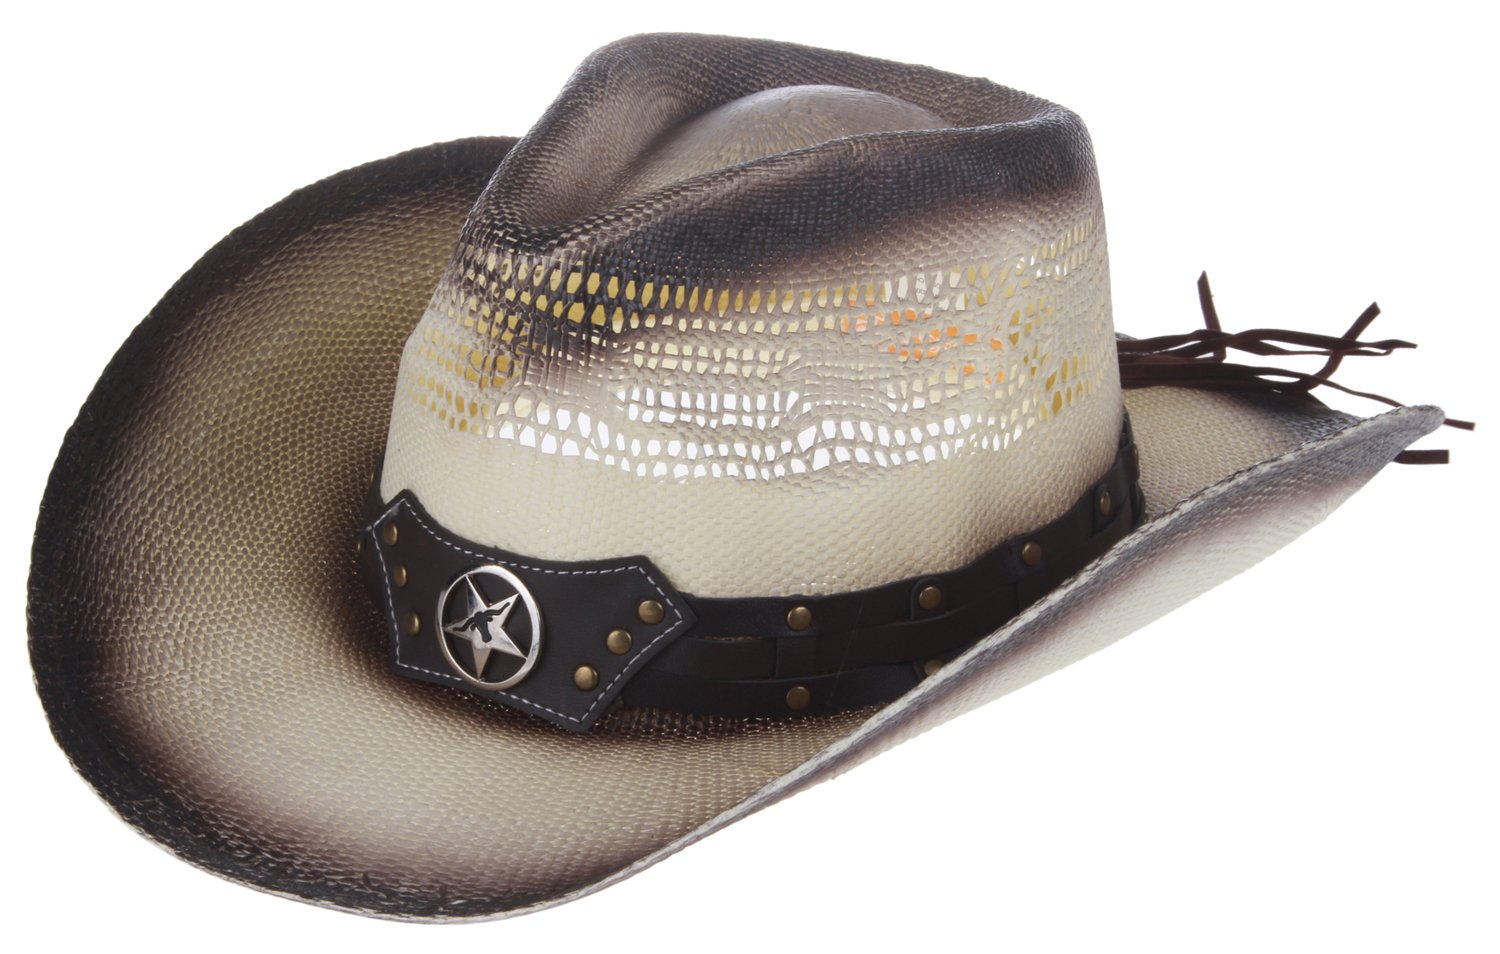 Enimay Men's Womens's Western Outback Straw Canvas Outdoor Cowboy Hat COWBOY-2-LA-ML-340-LPK